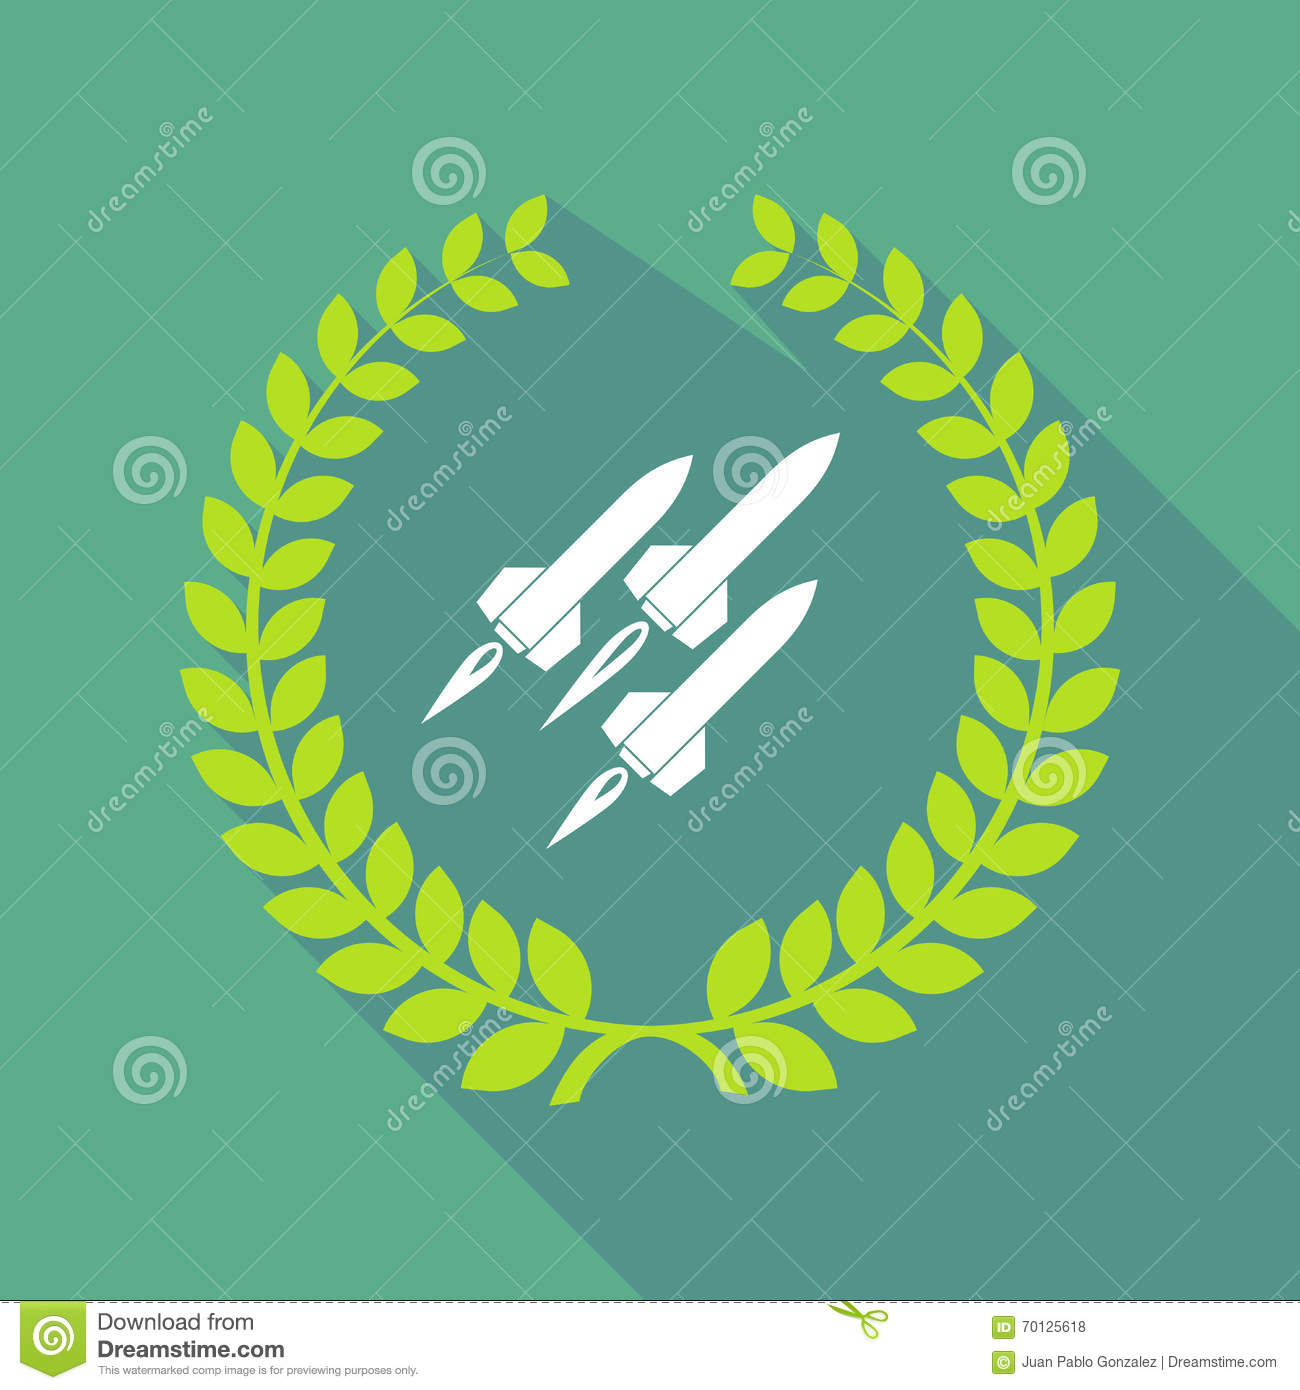 Long shadow laurel wreath icon with missiles